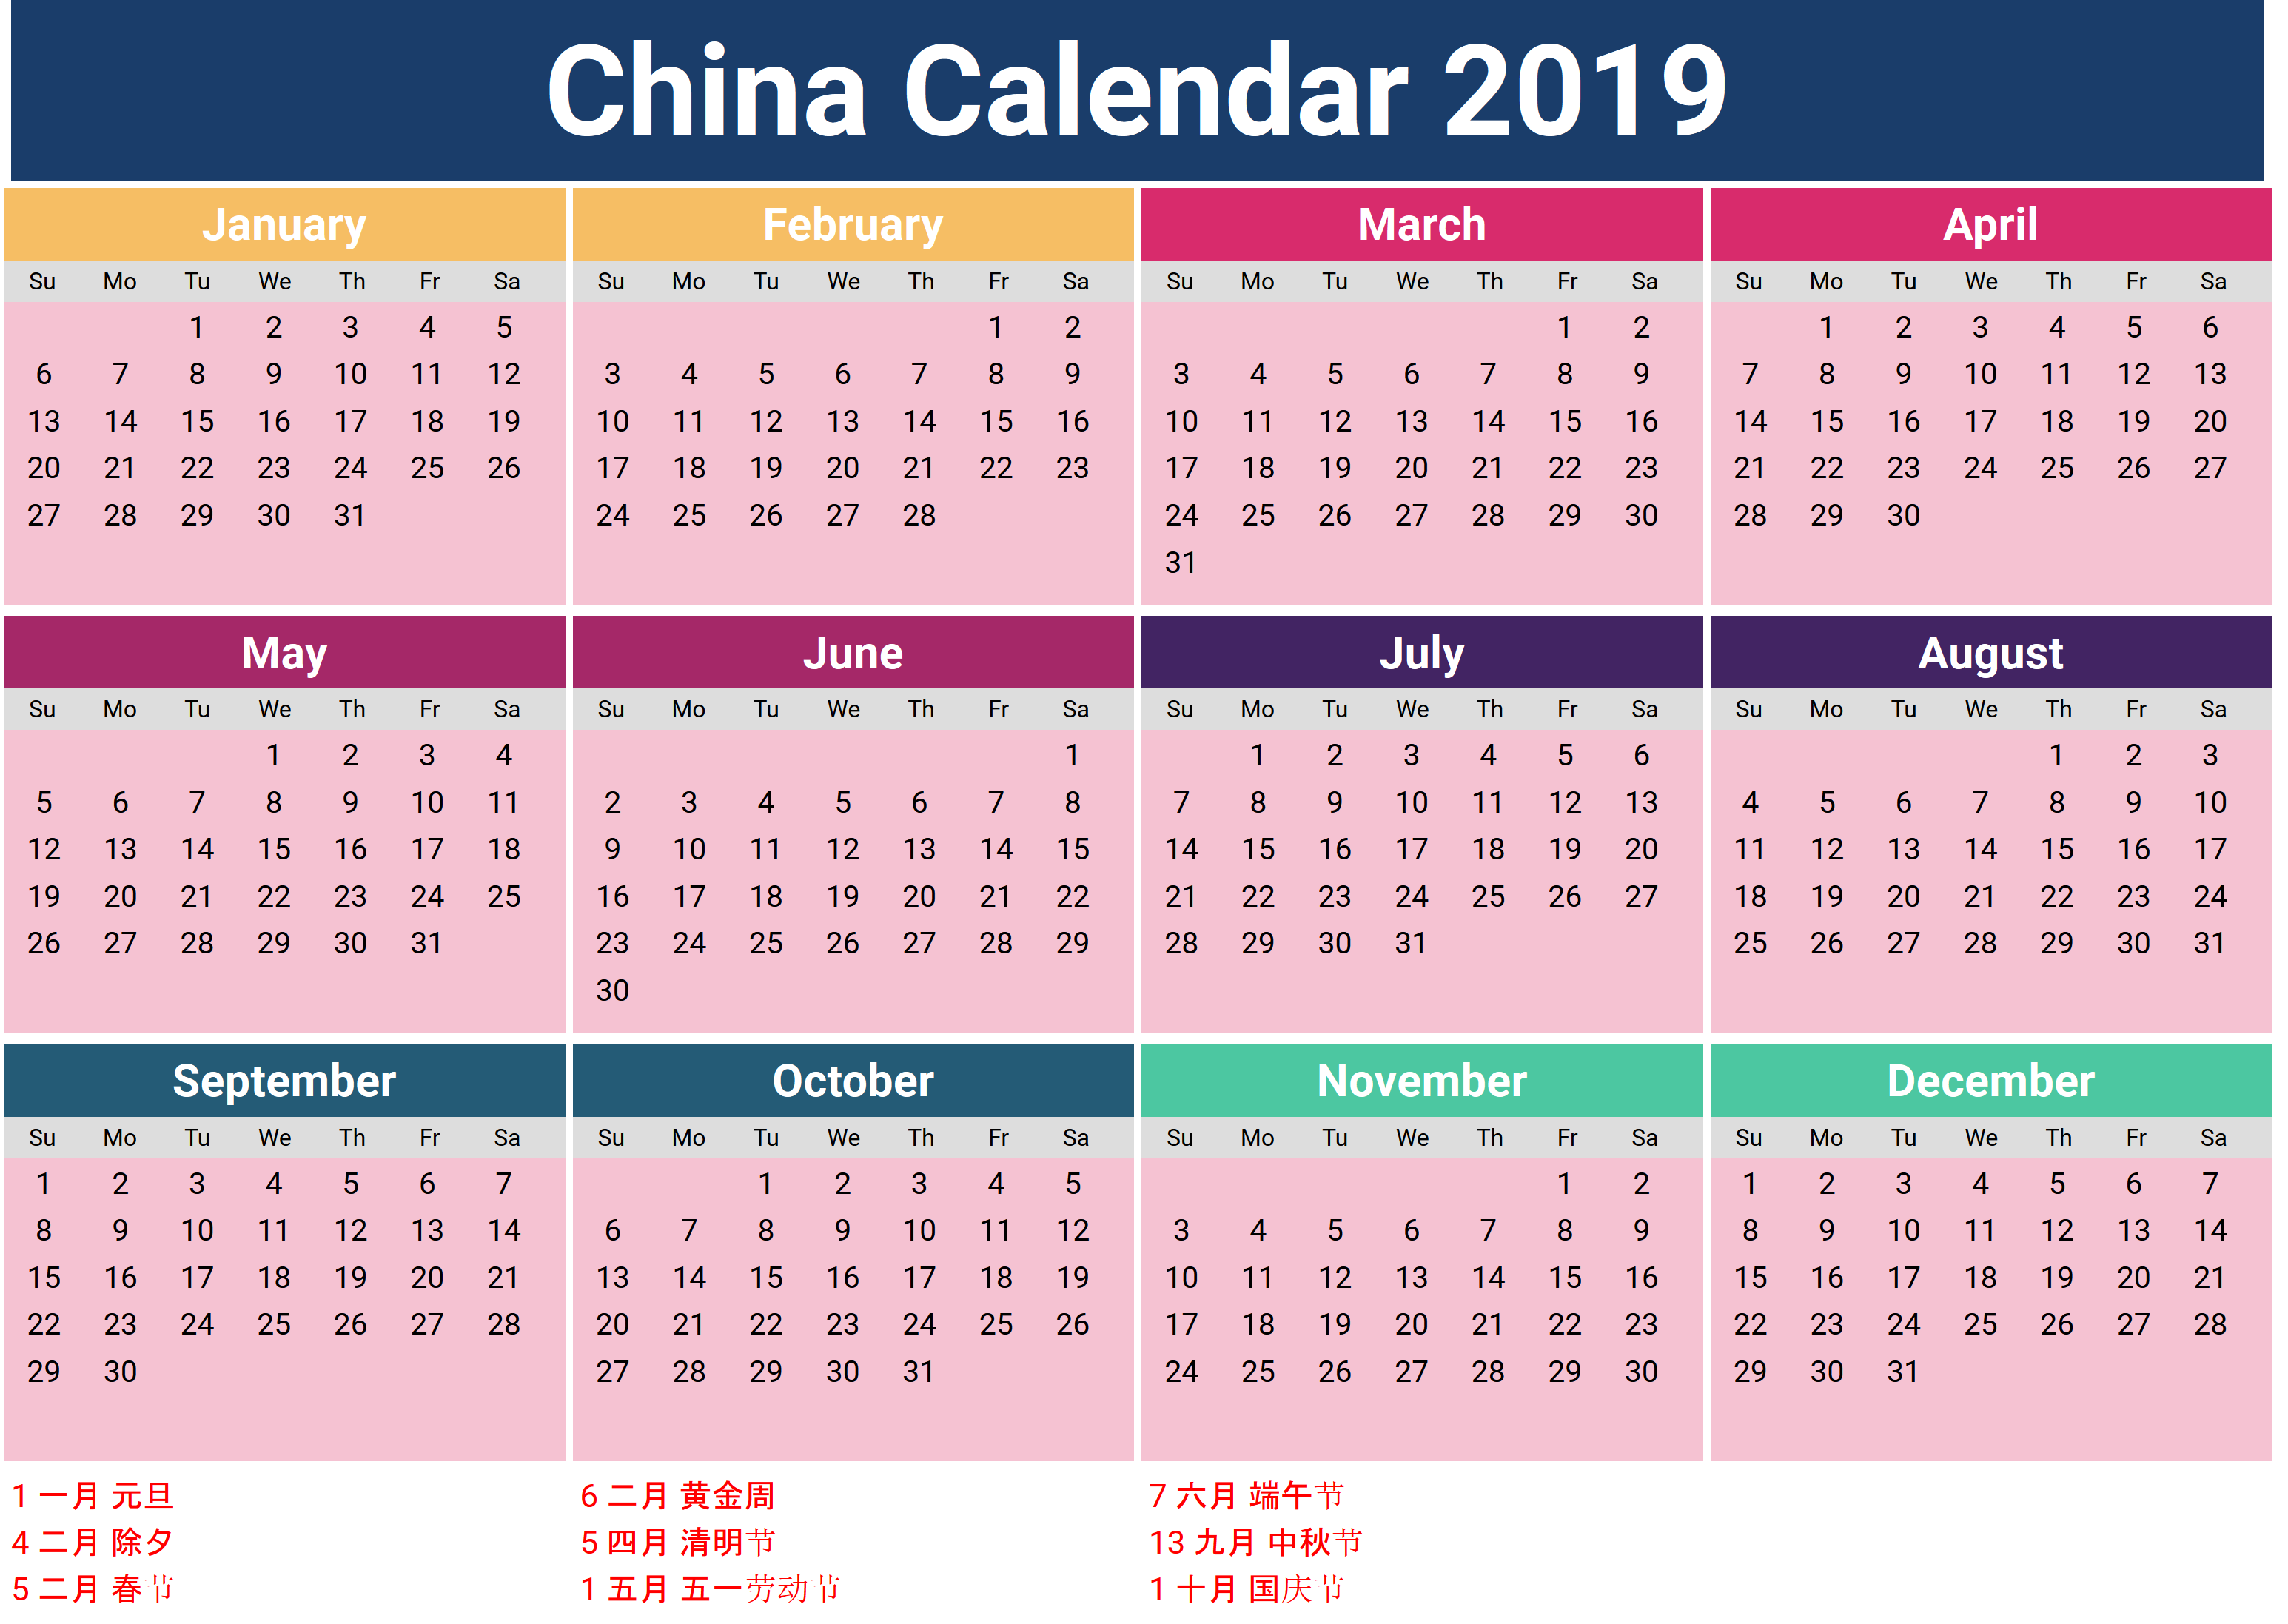 Next Year Calendar 2019 With Holidays Yearly Template Chinese Free Public